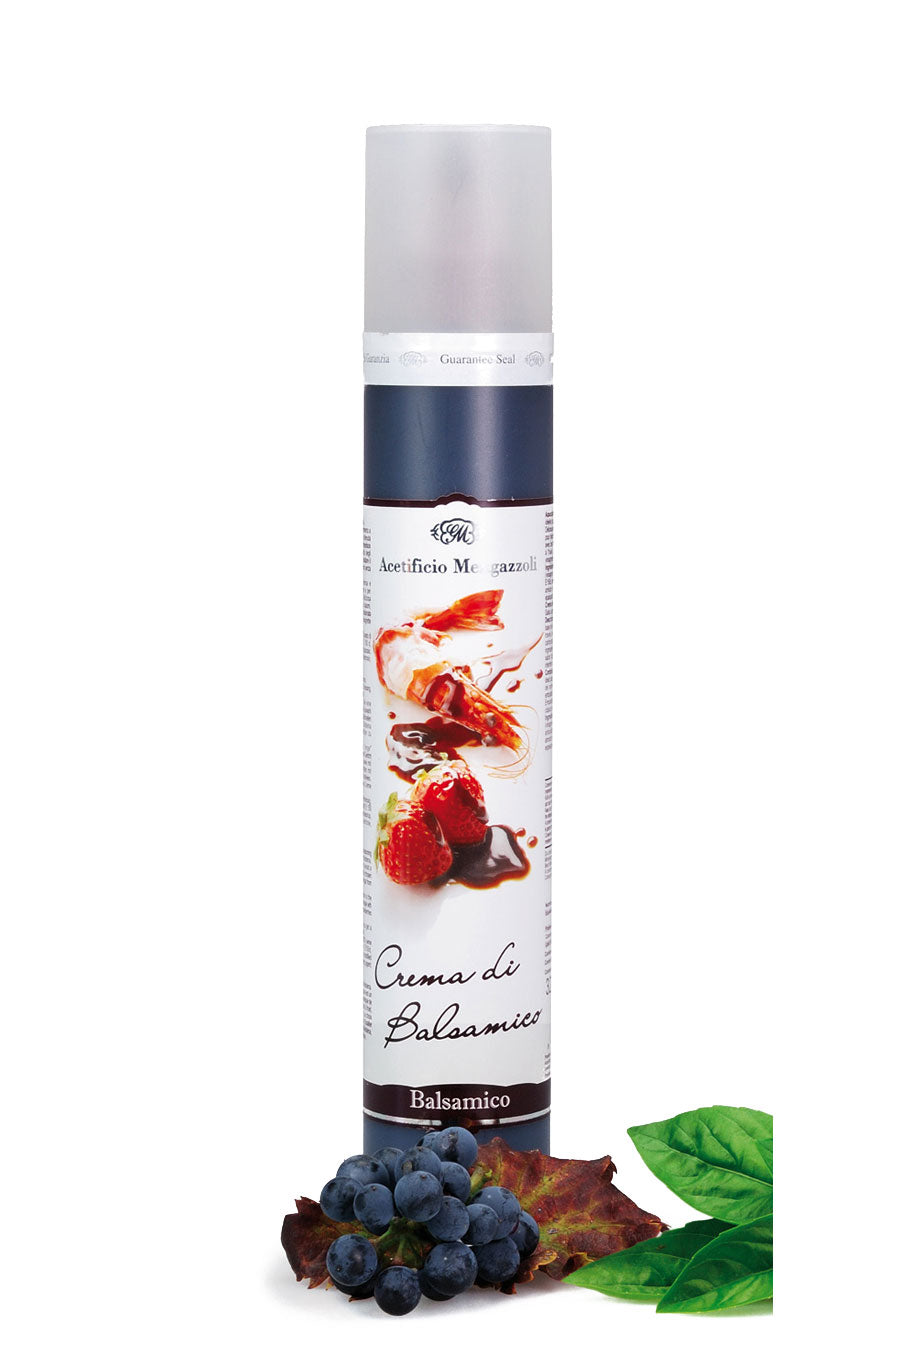 Mengazzoli Balsamic Cream of Modena IGP 320g